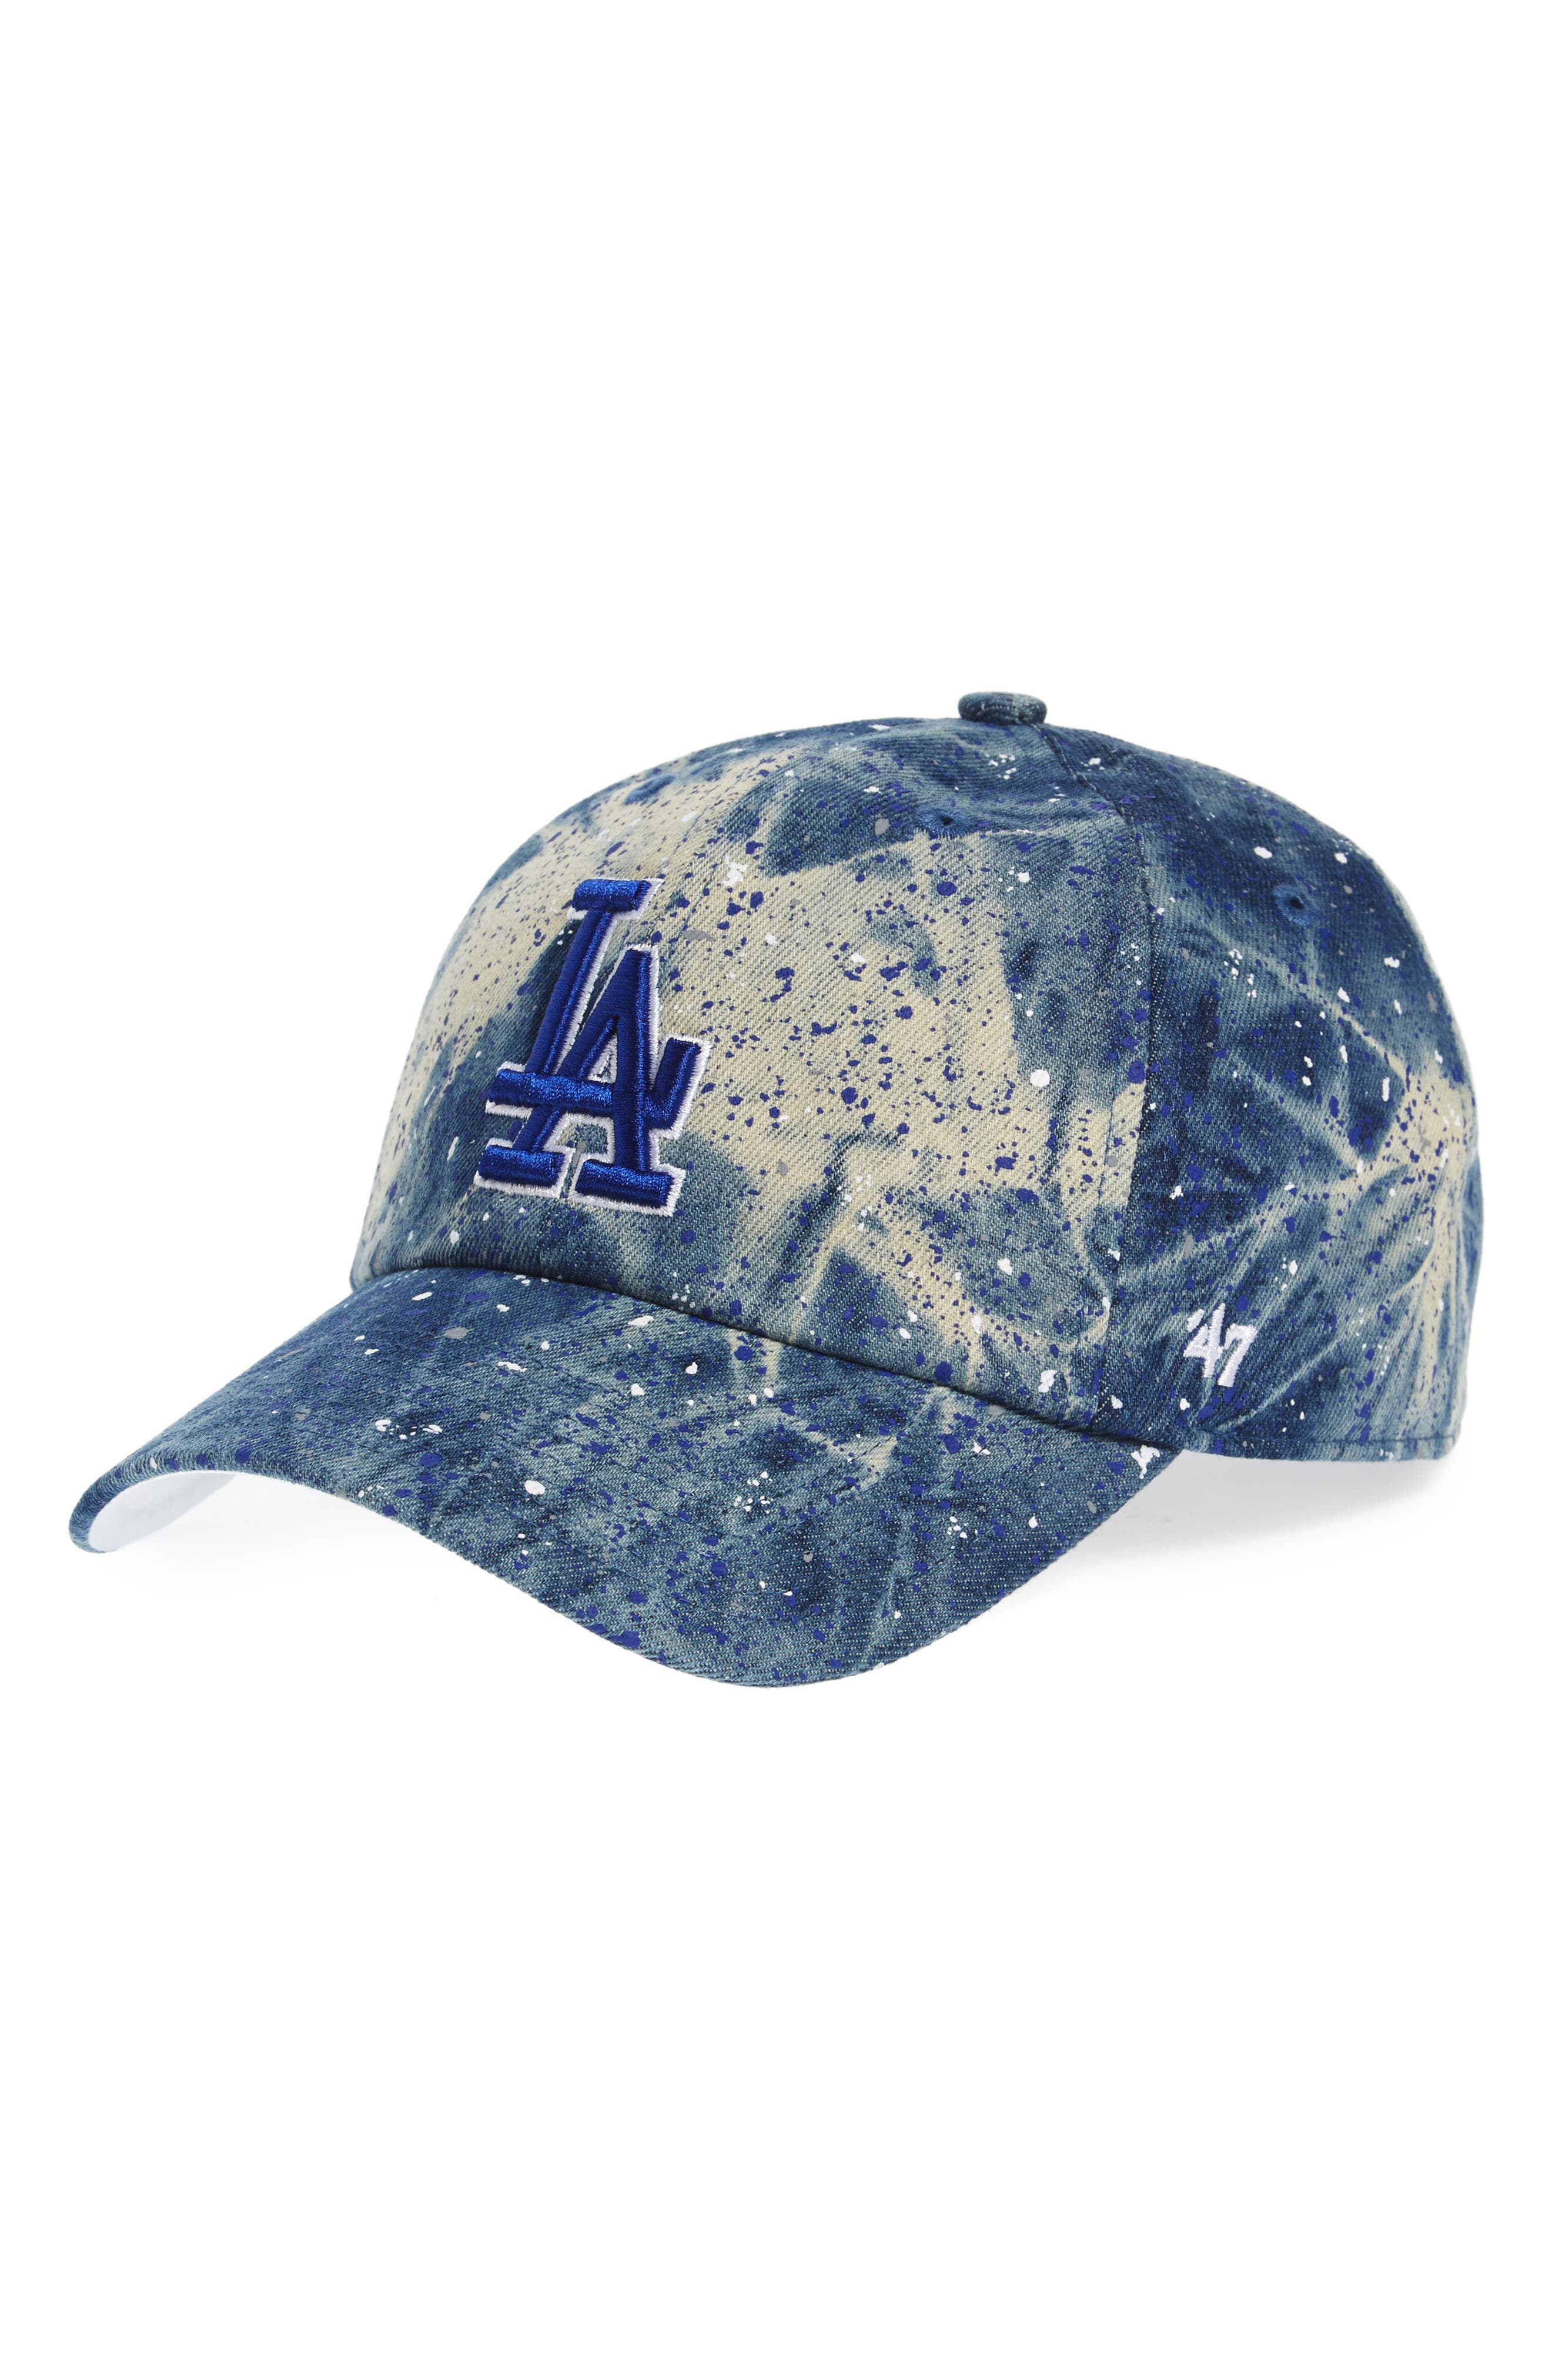 Los Angeles Dodgers - Blue Splatter Baseball Cap,                             Main thumbnail 1, color,                             400